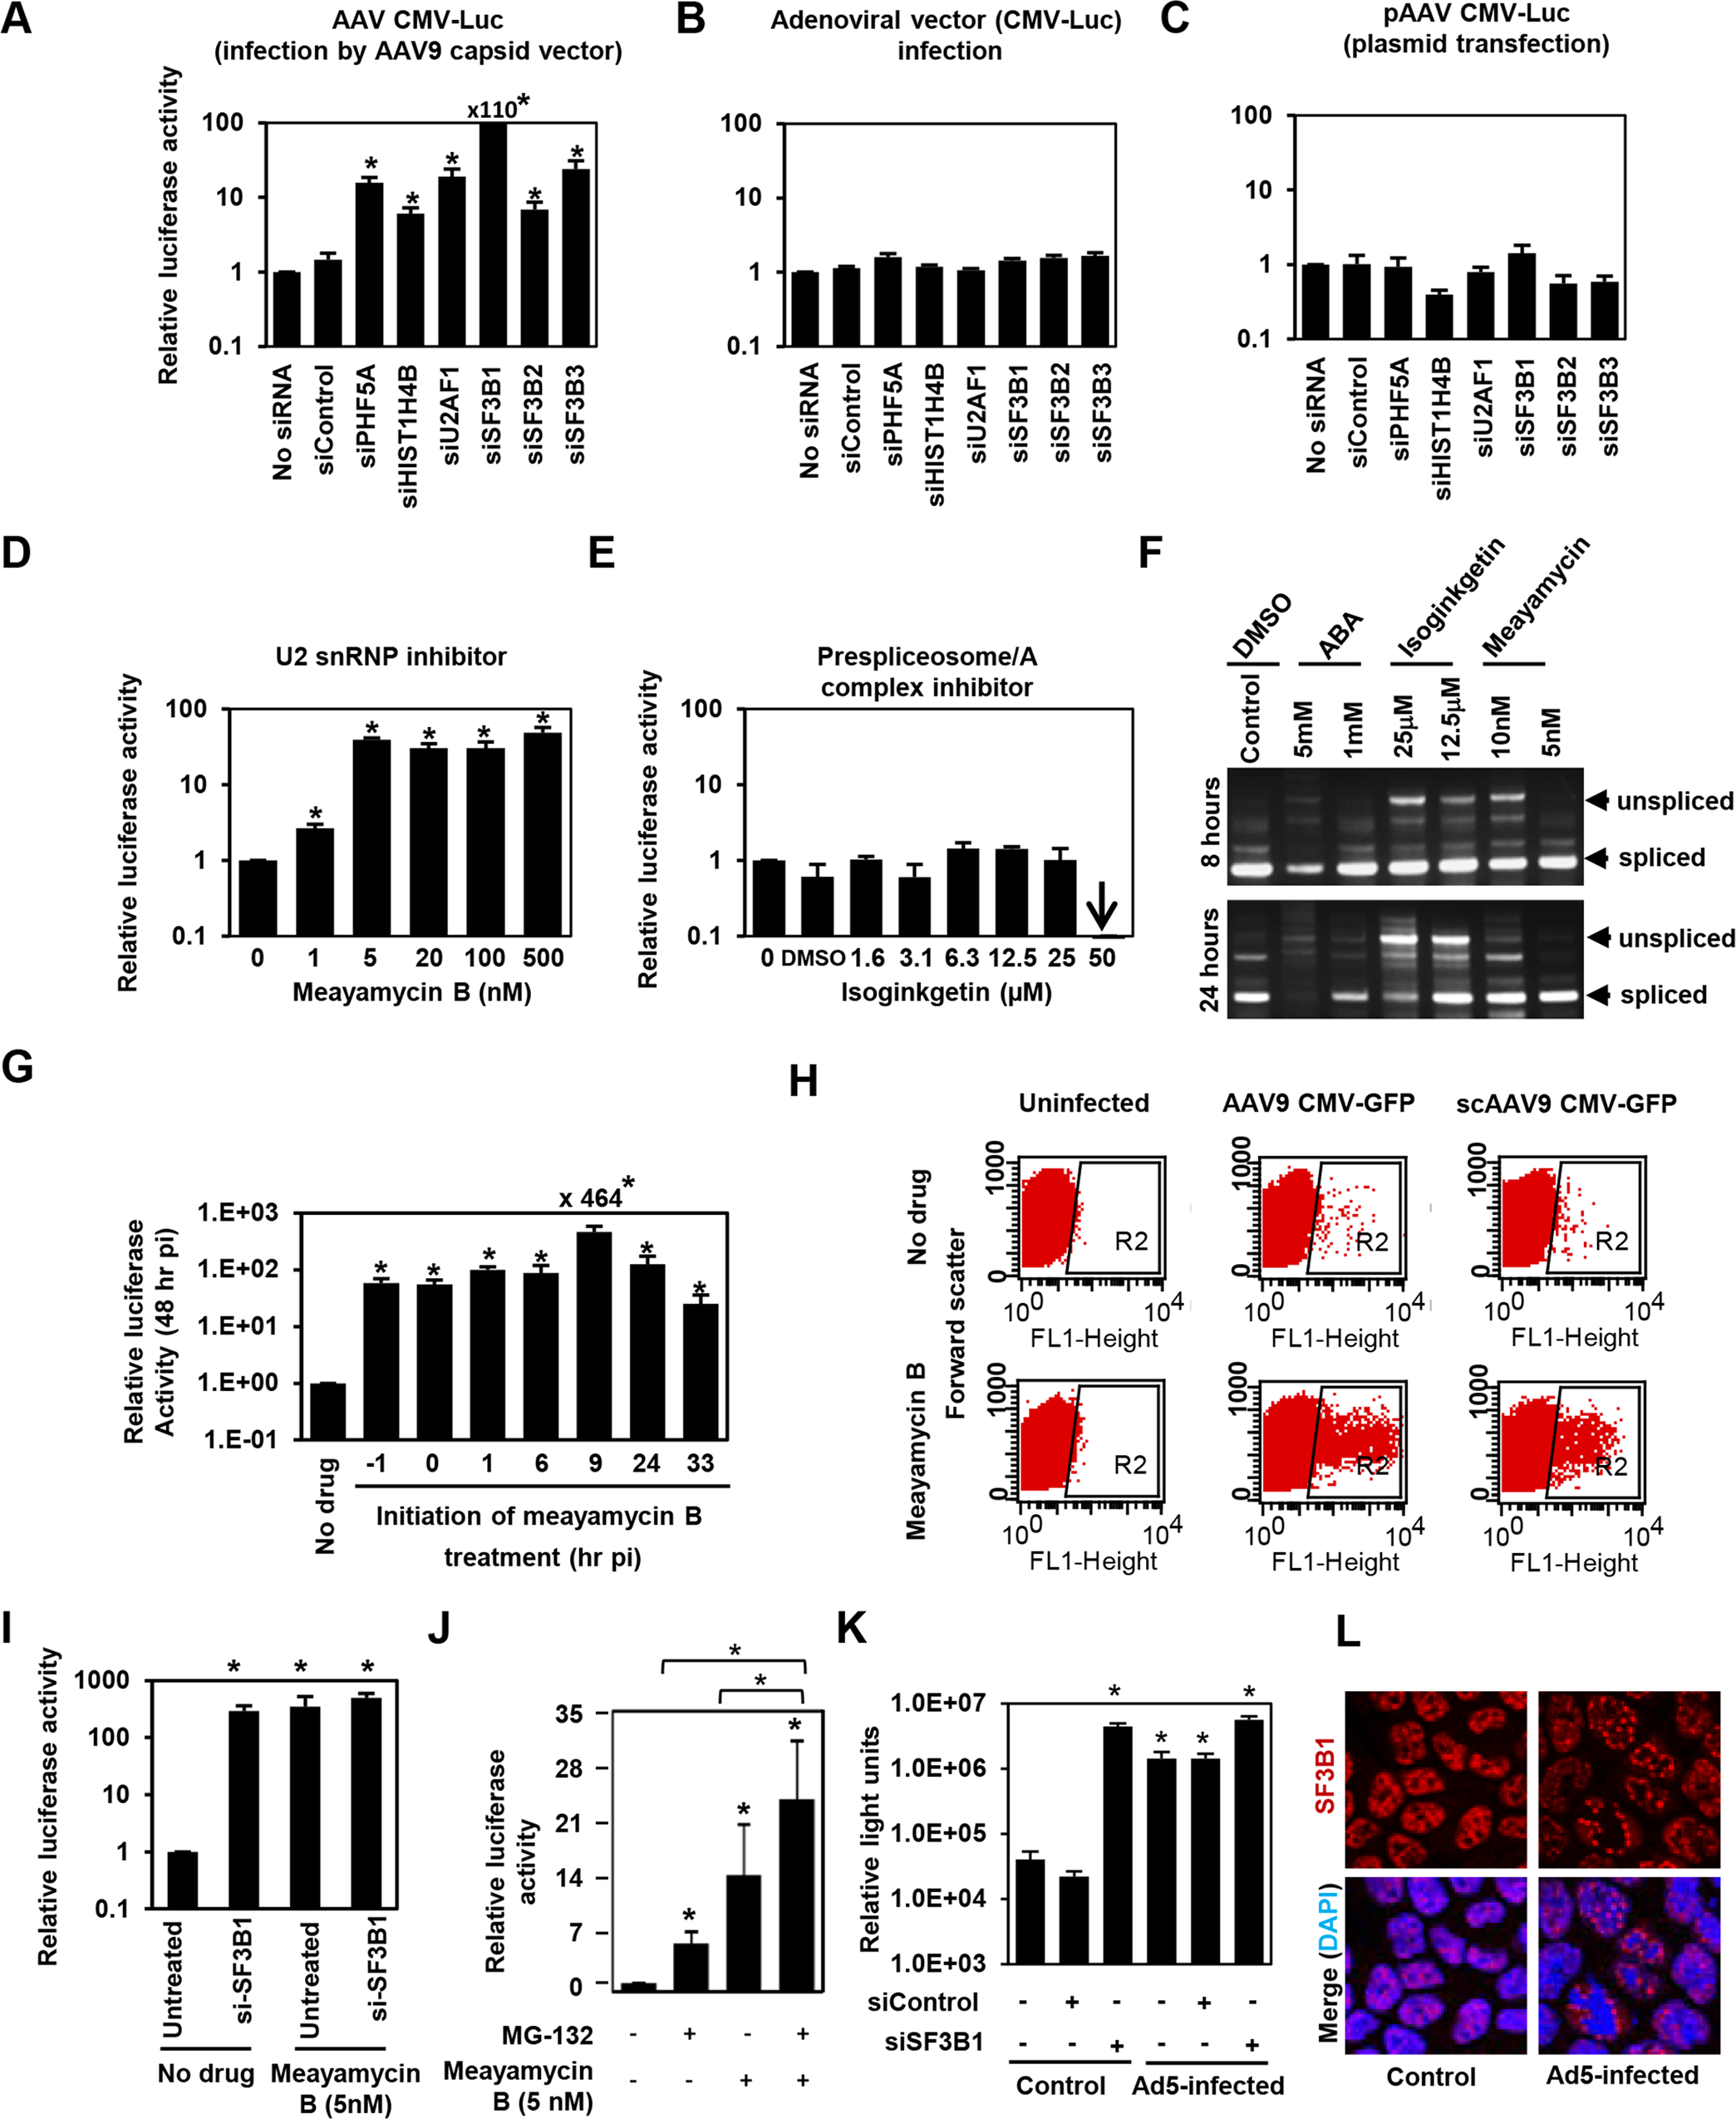 The U2snRNP complex plays the key role in restricting AAV vector transduction.